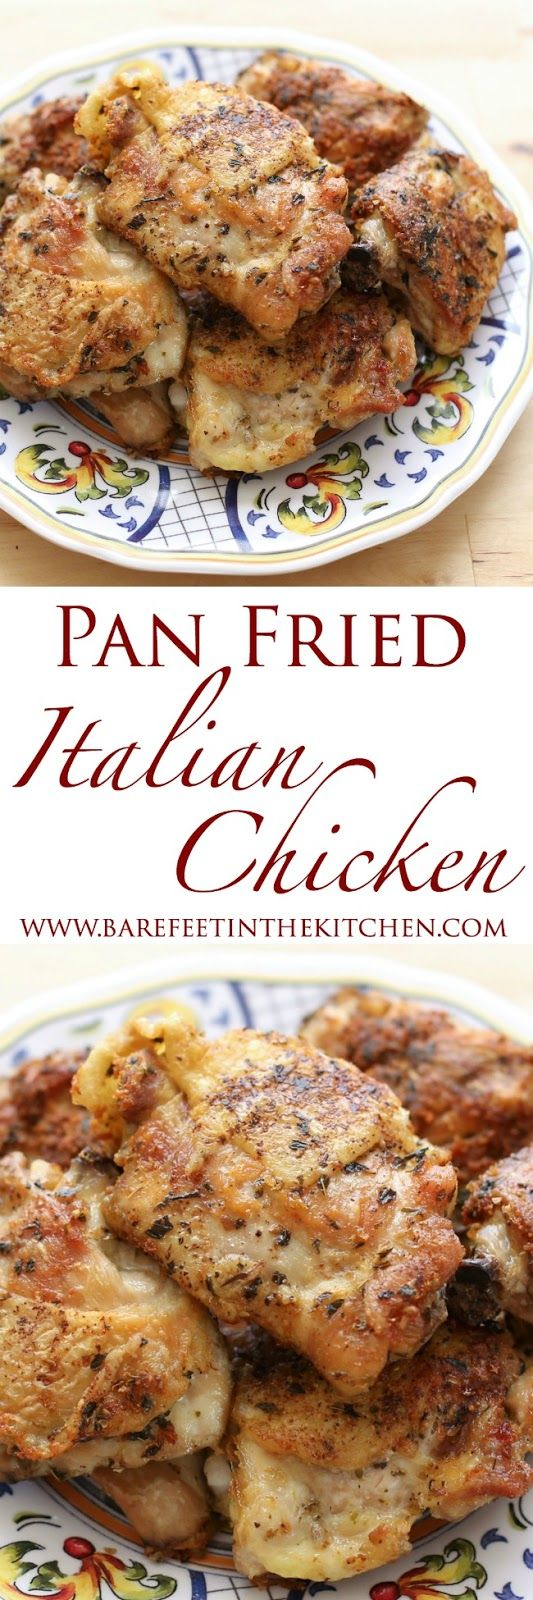 EASY Pan-Fried Italian Chicken is made with just 1 tablespoon of oil! Get the recipe at barefeetinthekitchen.com